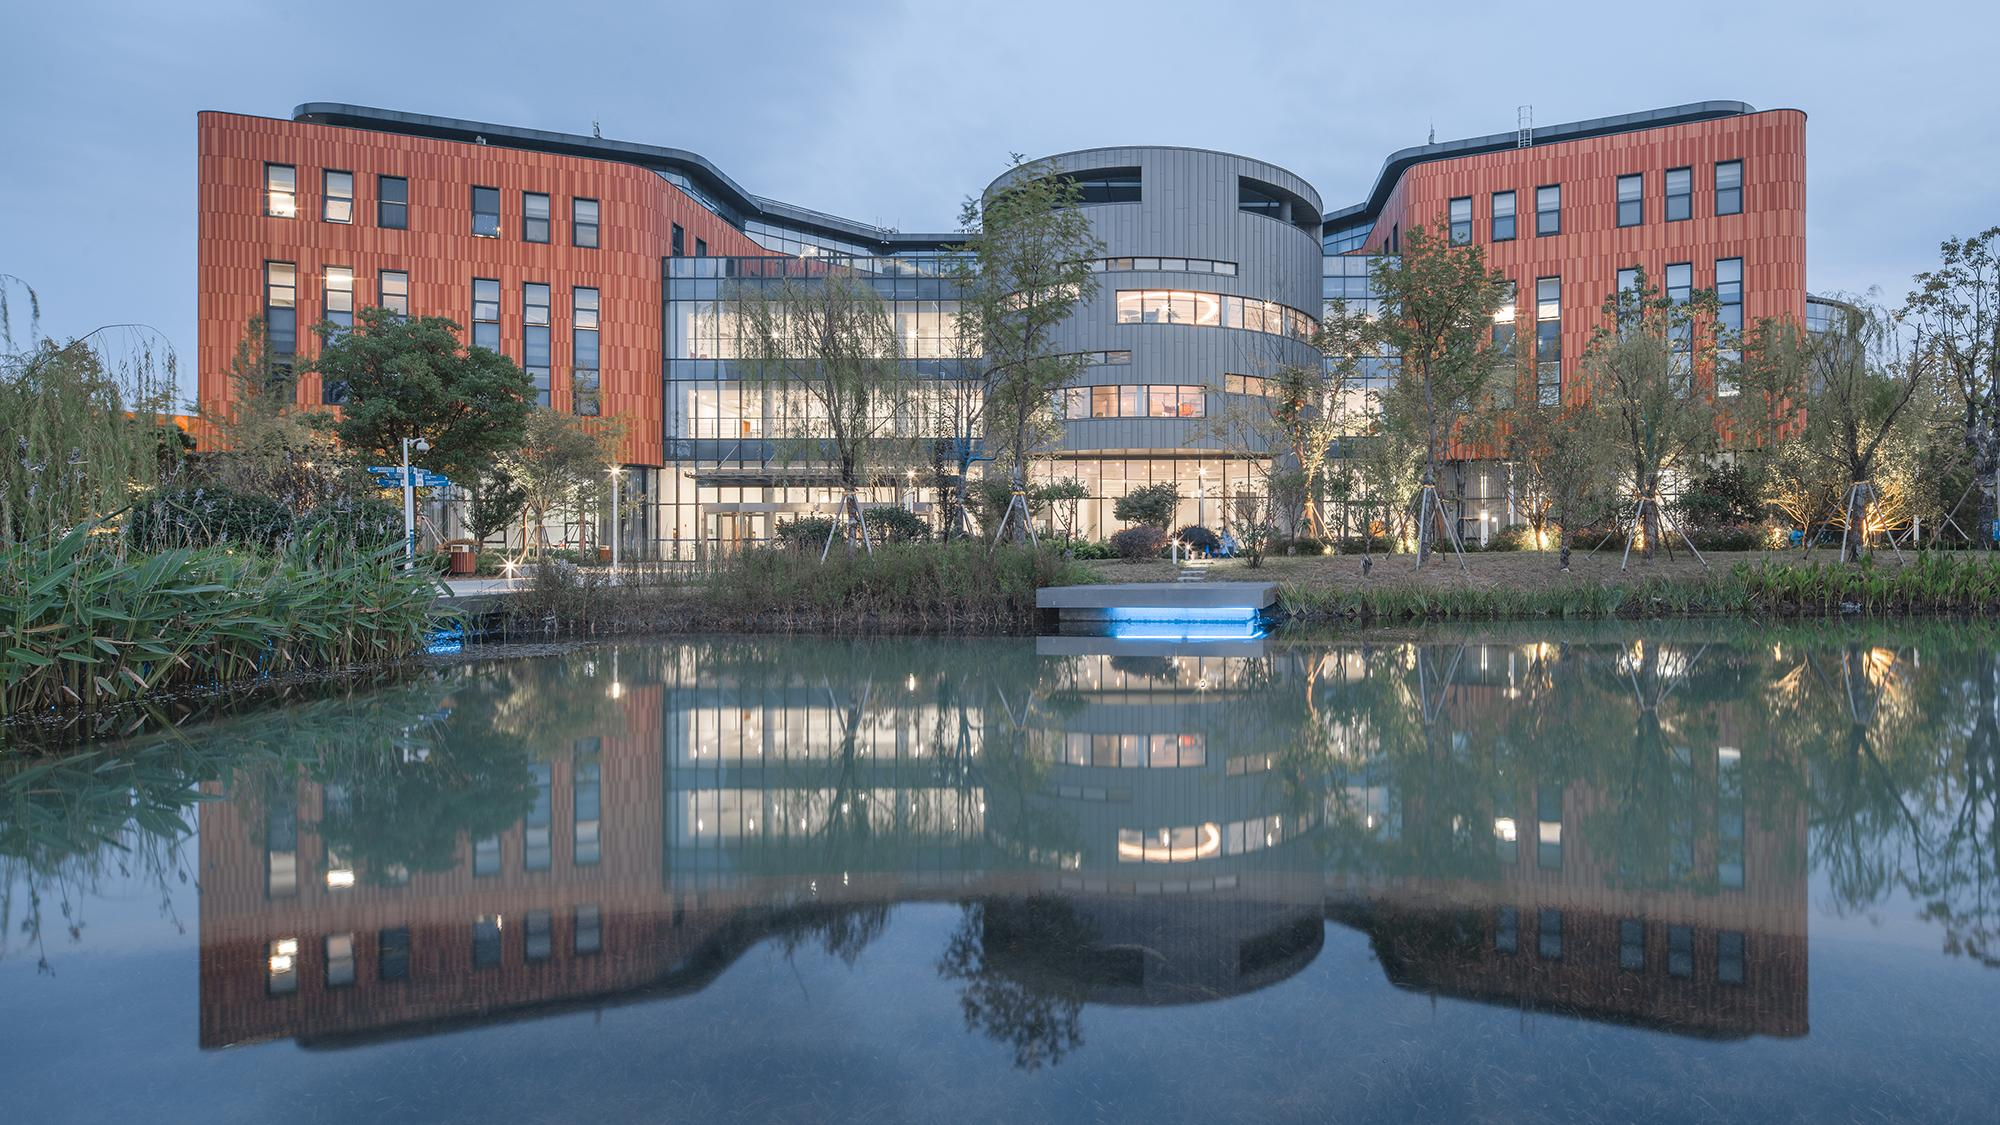 Xian Jiaotong Liverpool University viewed from the back from across a pond, showing a circular volume in the middle and wings of red brick cladding on either side